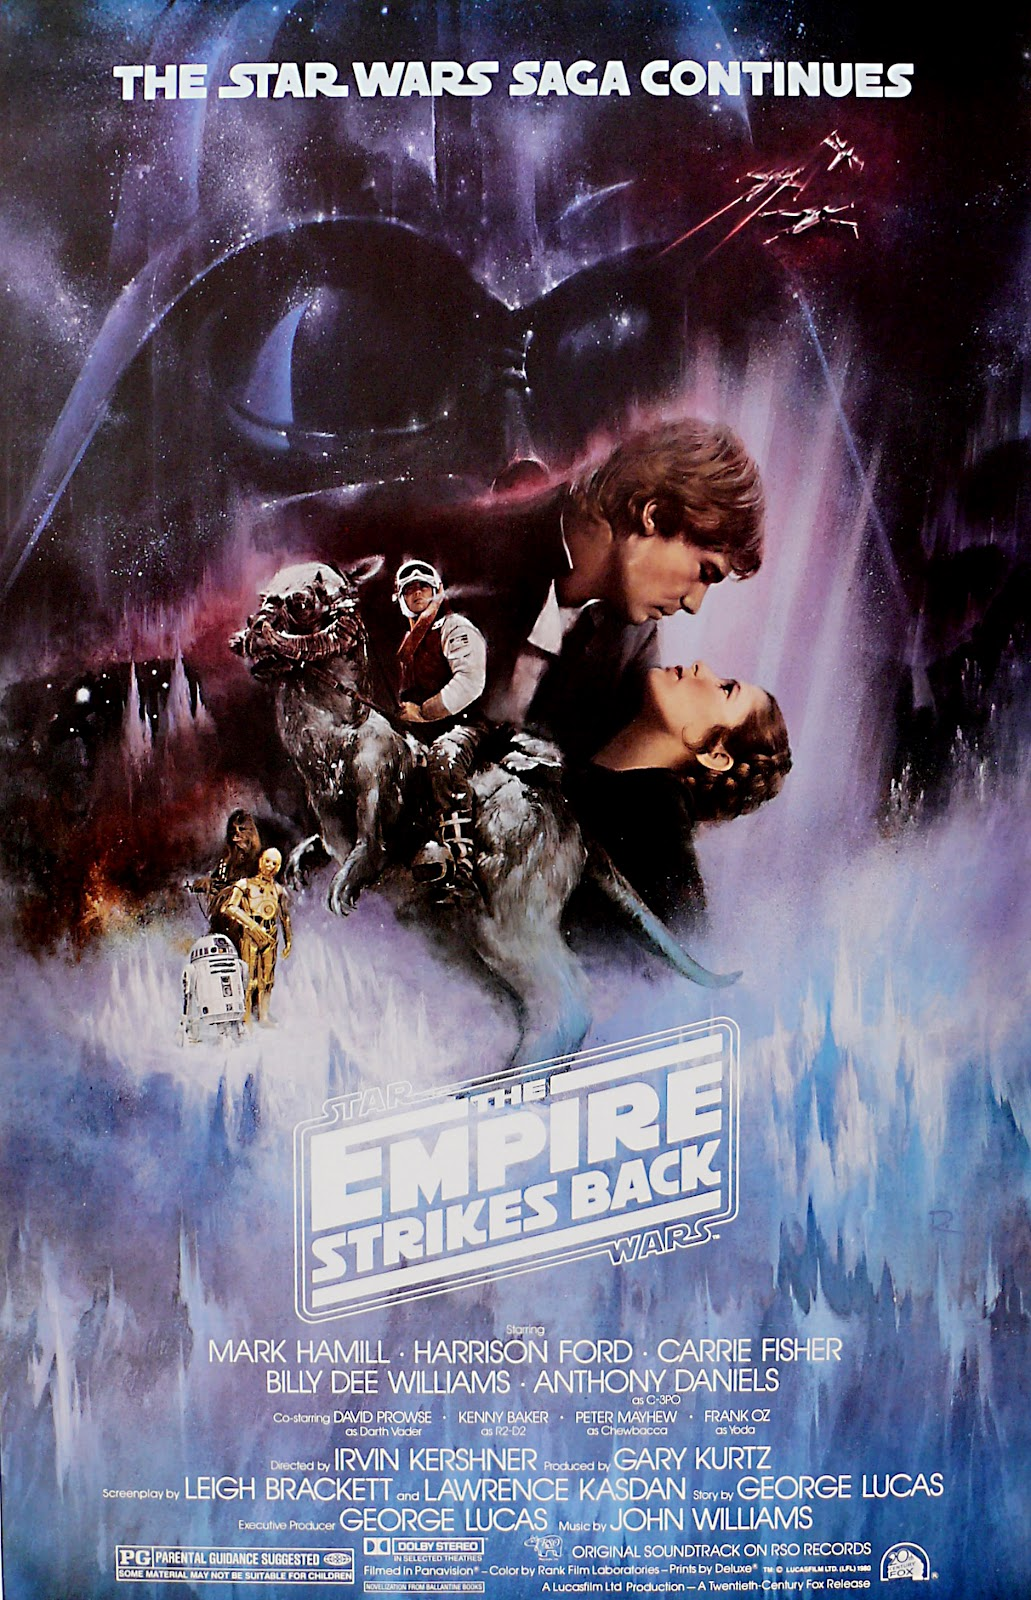 Star Wars Episode V: The Empire Strikes Back (1980)